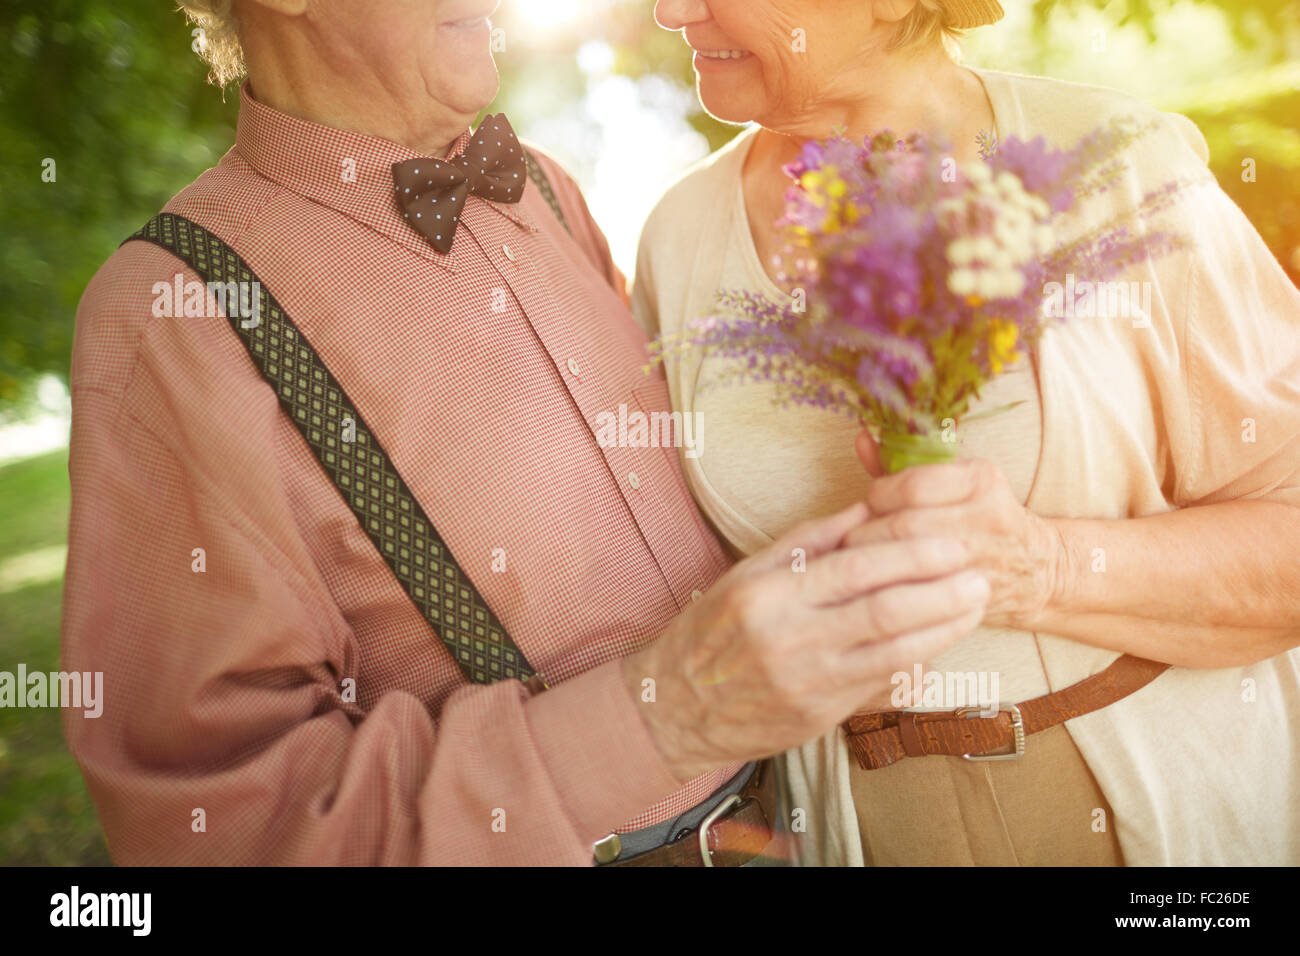 Romantic seniors in embrace enjoying being together - Stock Image